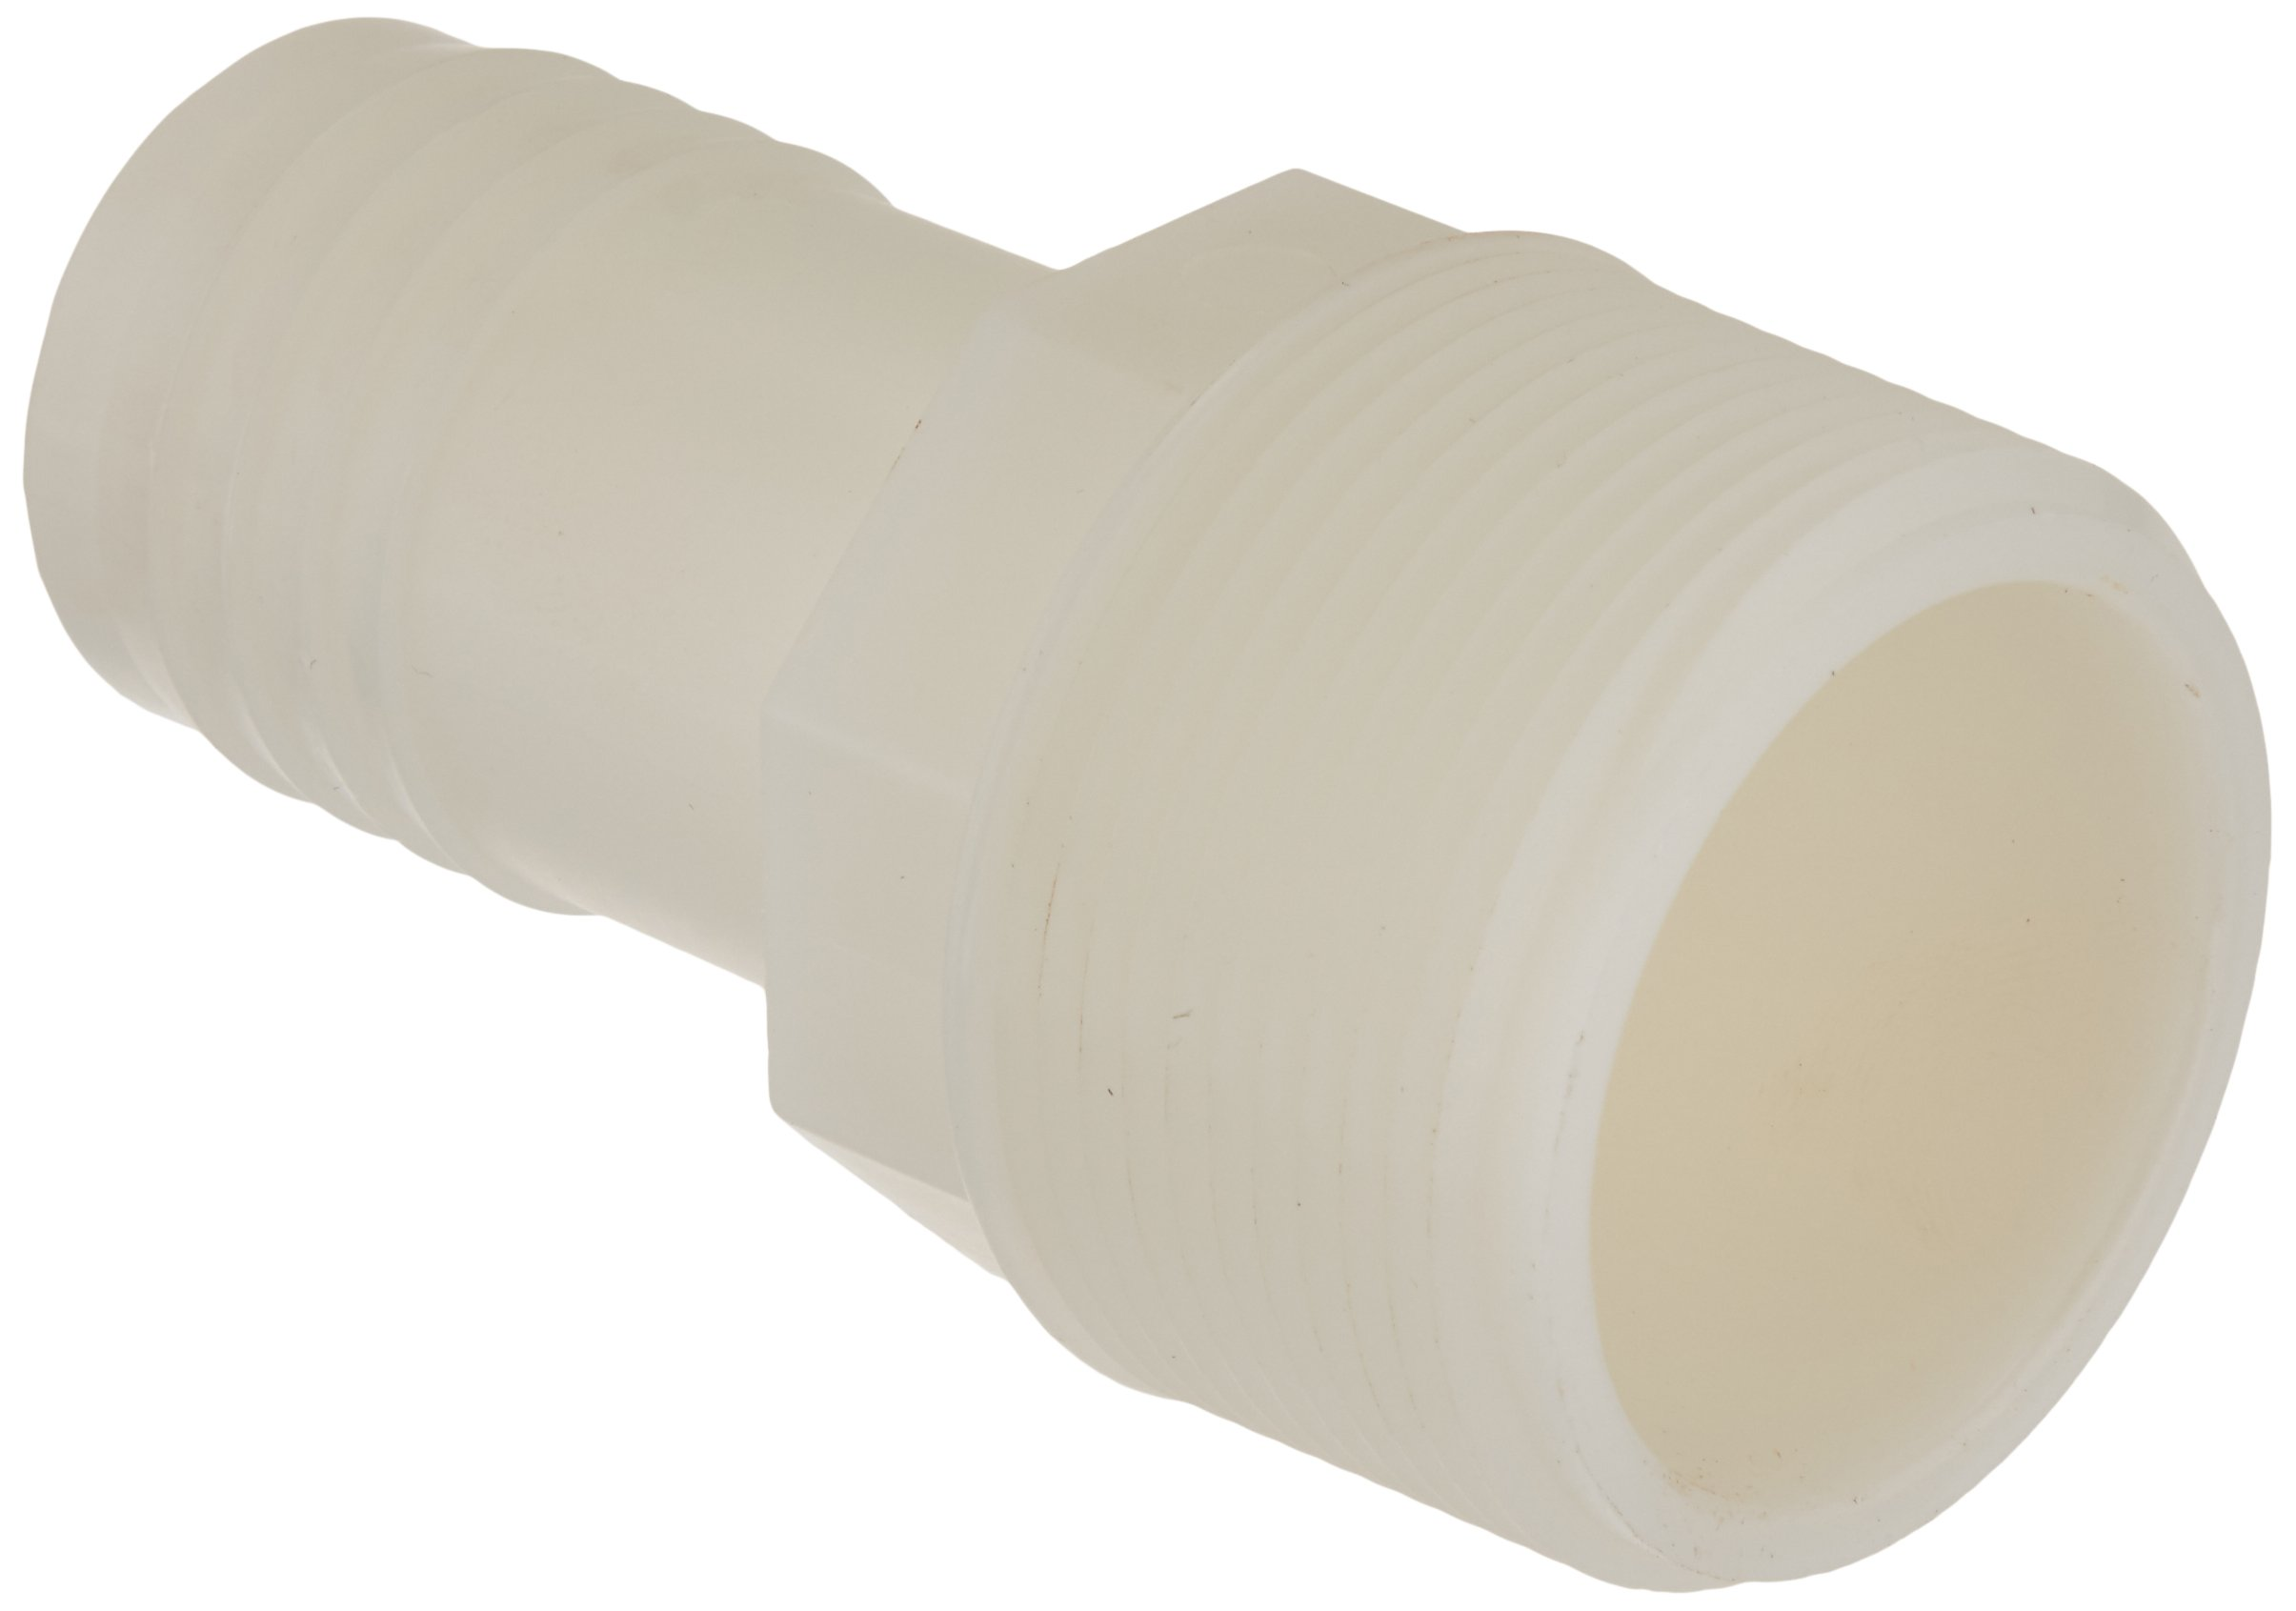 Pack of 10 Pack of 10 1//4 ID x 1//8 FNPT 1//4 ID x 1//8 FNPT Parker 126HBL-4-2-pk10 Hose Barb Brass